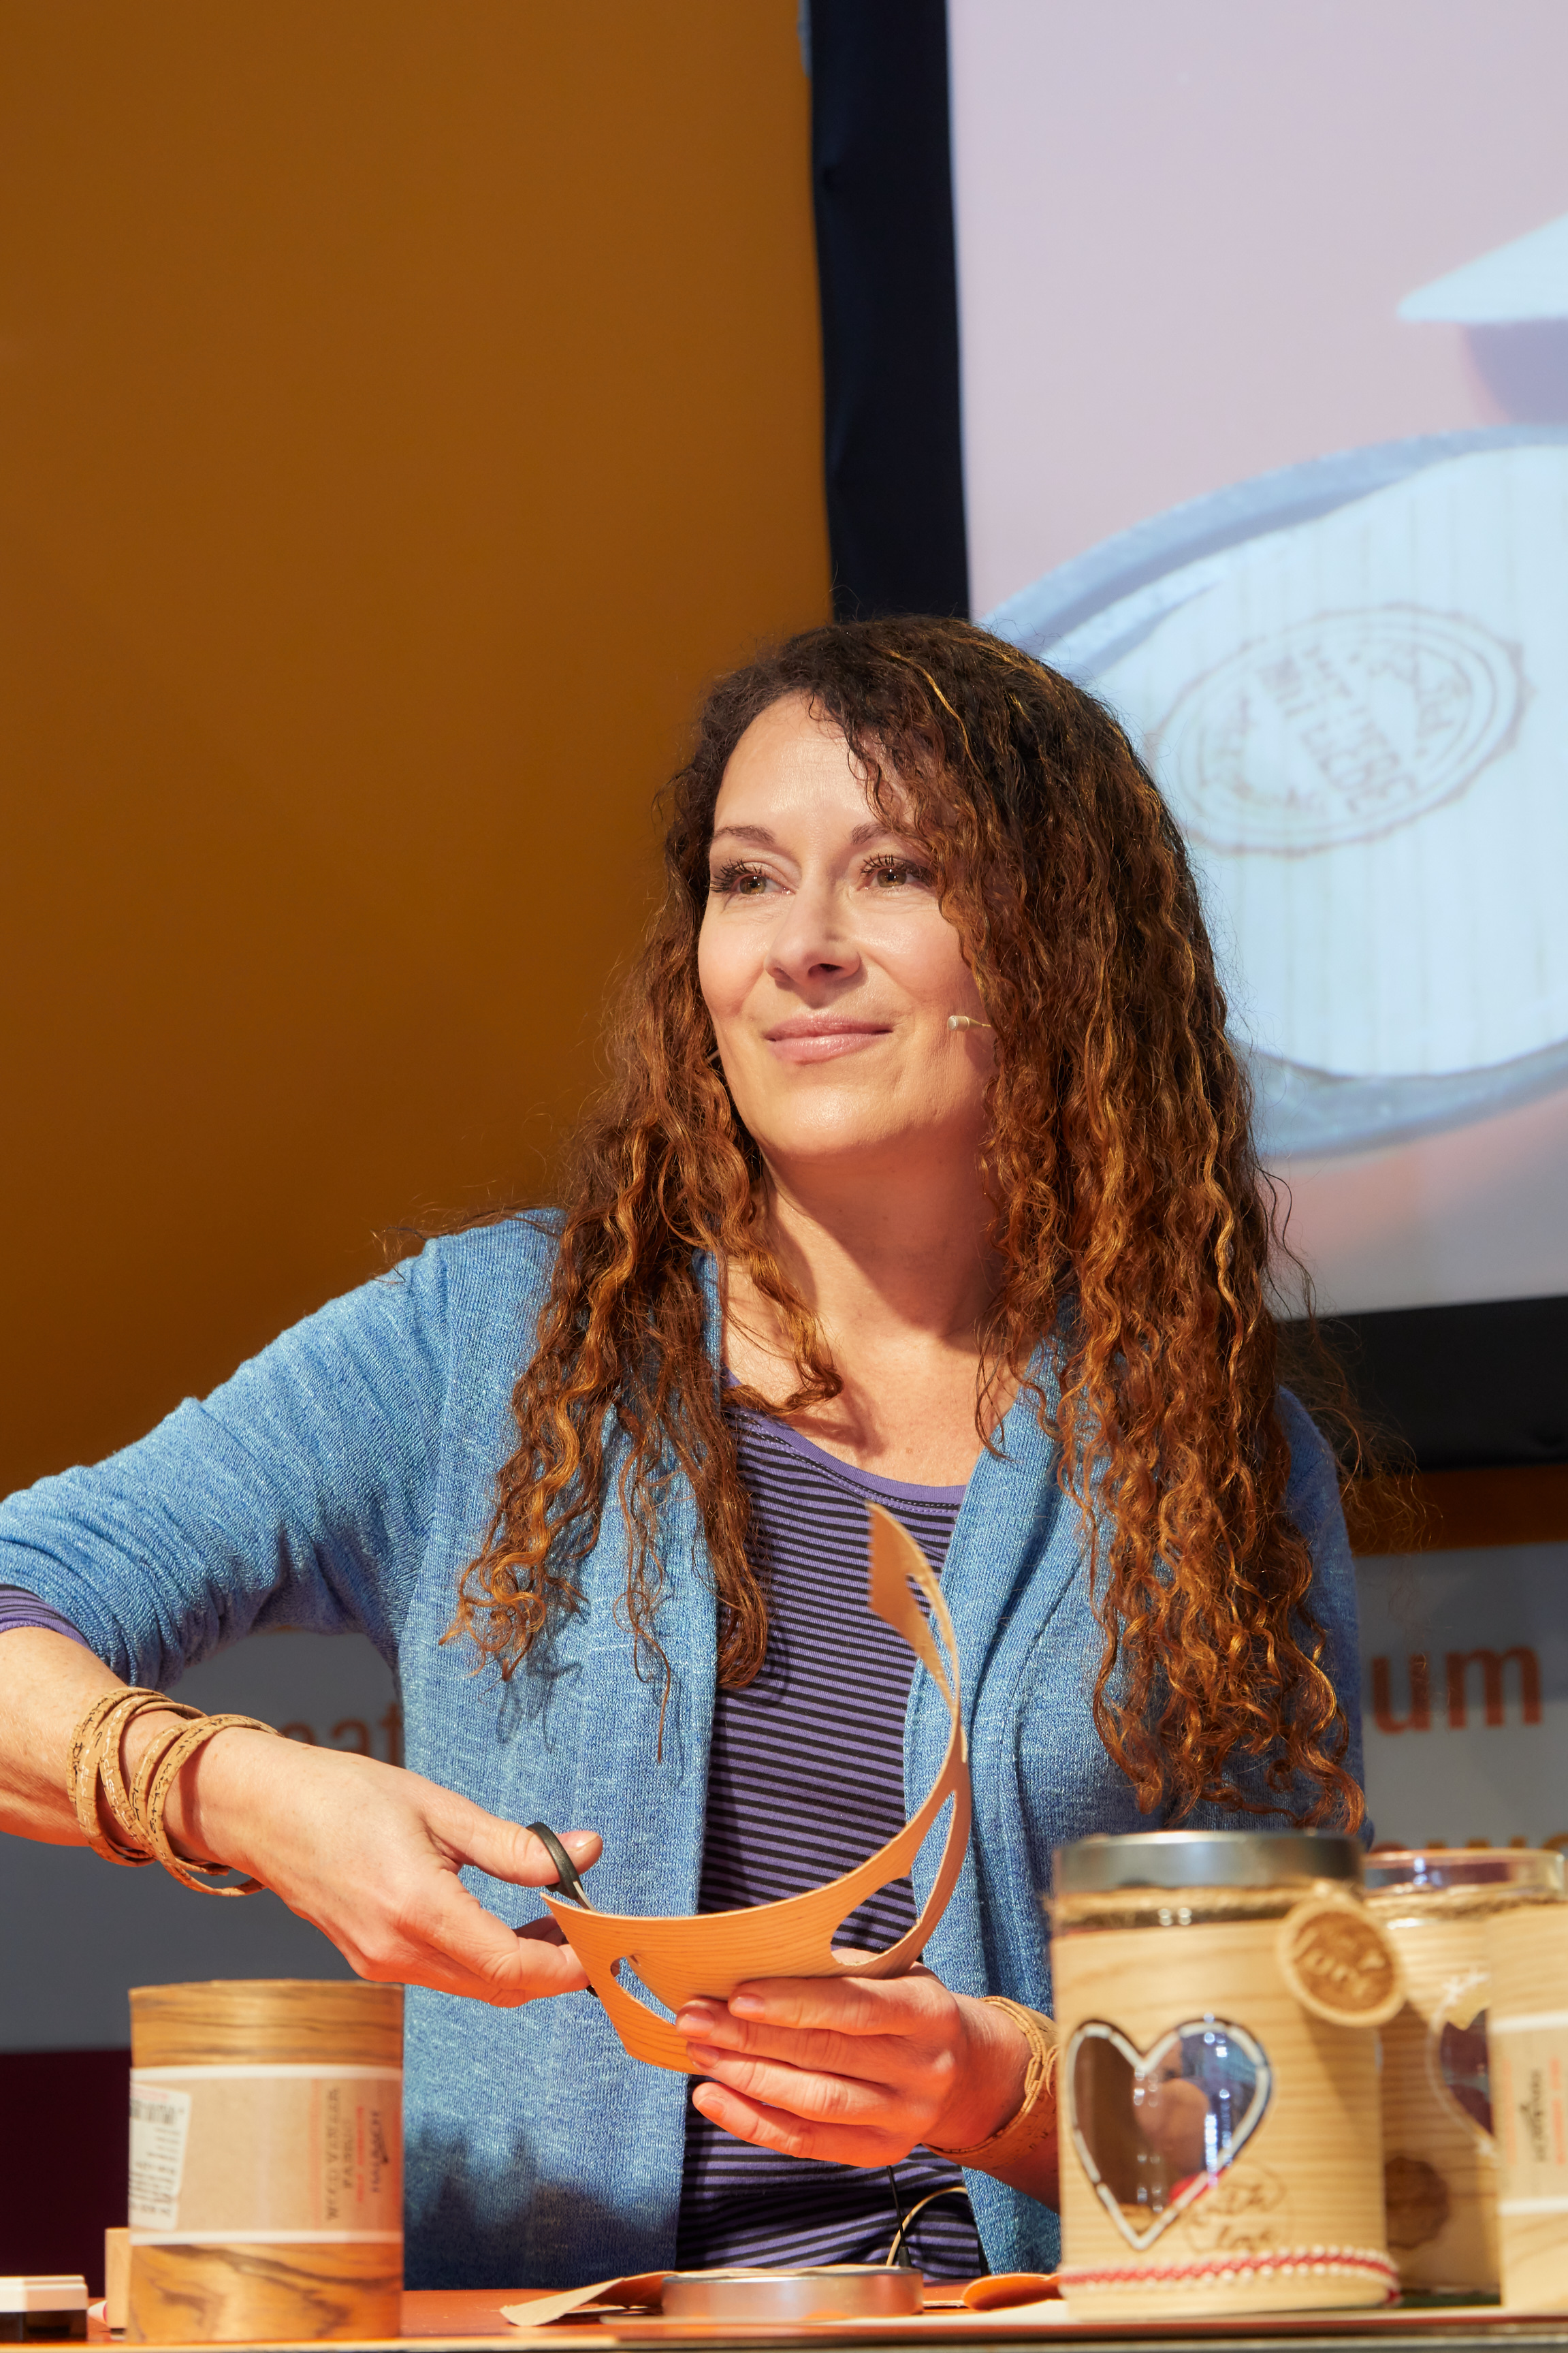 Martina Lammel, DIY-icon and TV host/DIY-Ikone und TV Moderatorin